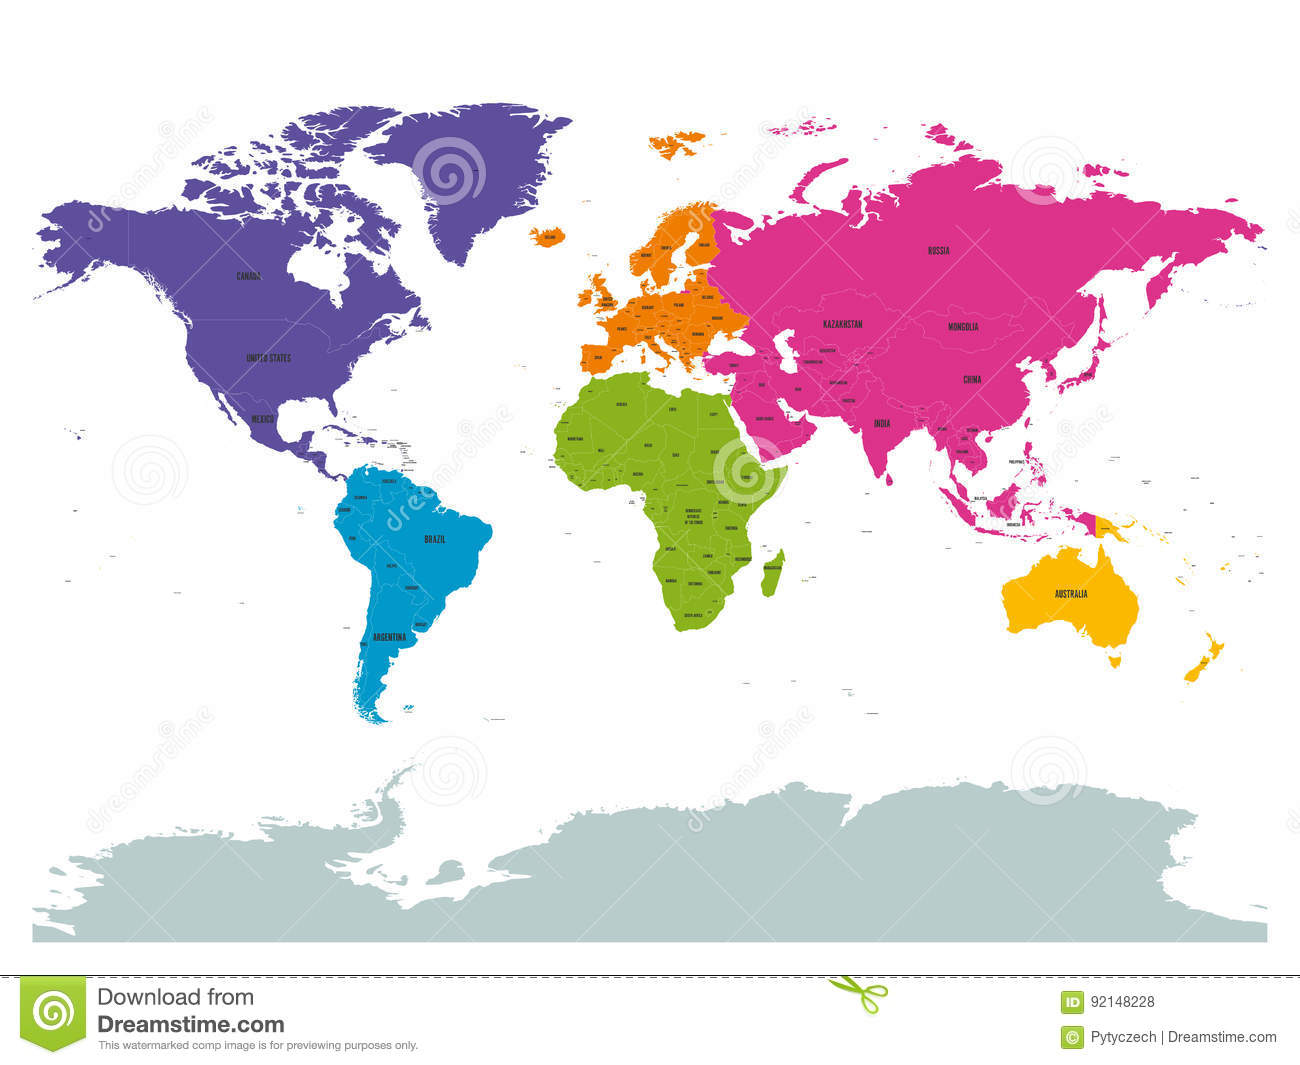 Political world colored by continents with country labels om white political world colored by continents with country labels om white background simple flat vector illustration gumiabroncs Image collections